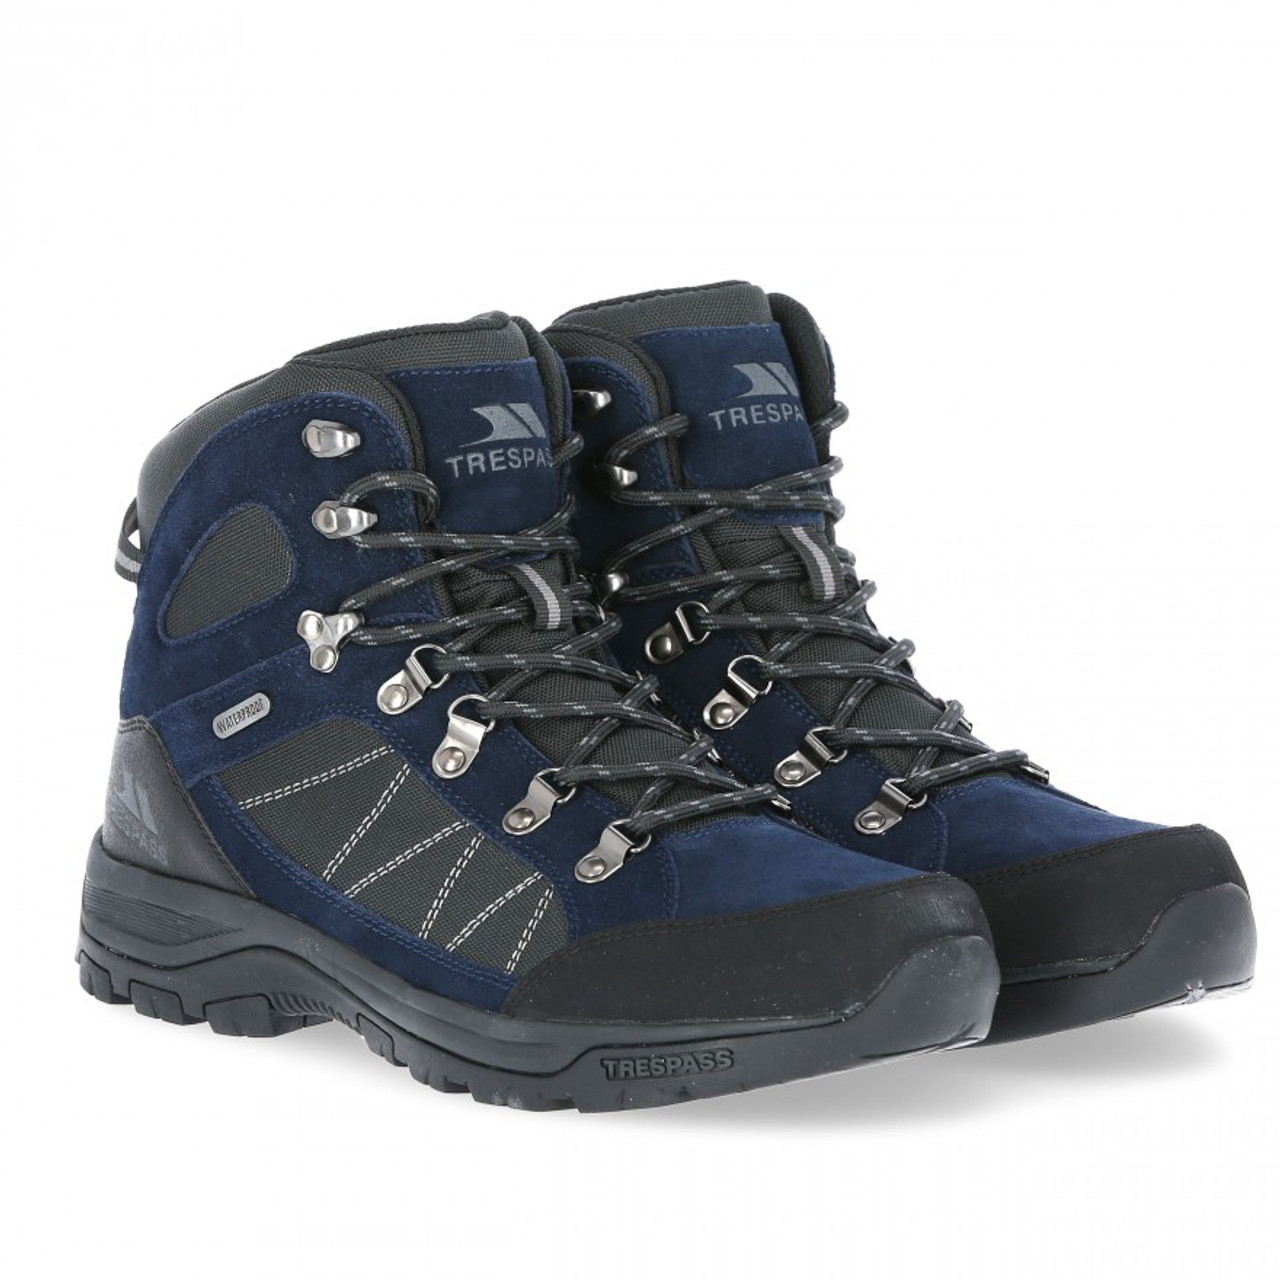 Chavez - Mens Mid Cut Hiking Boot